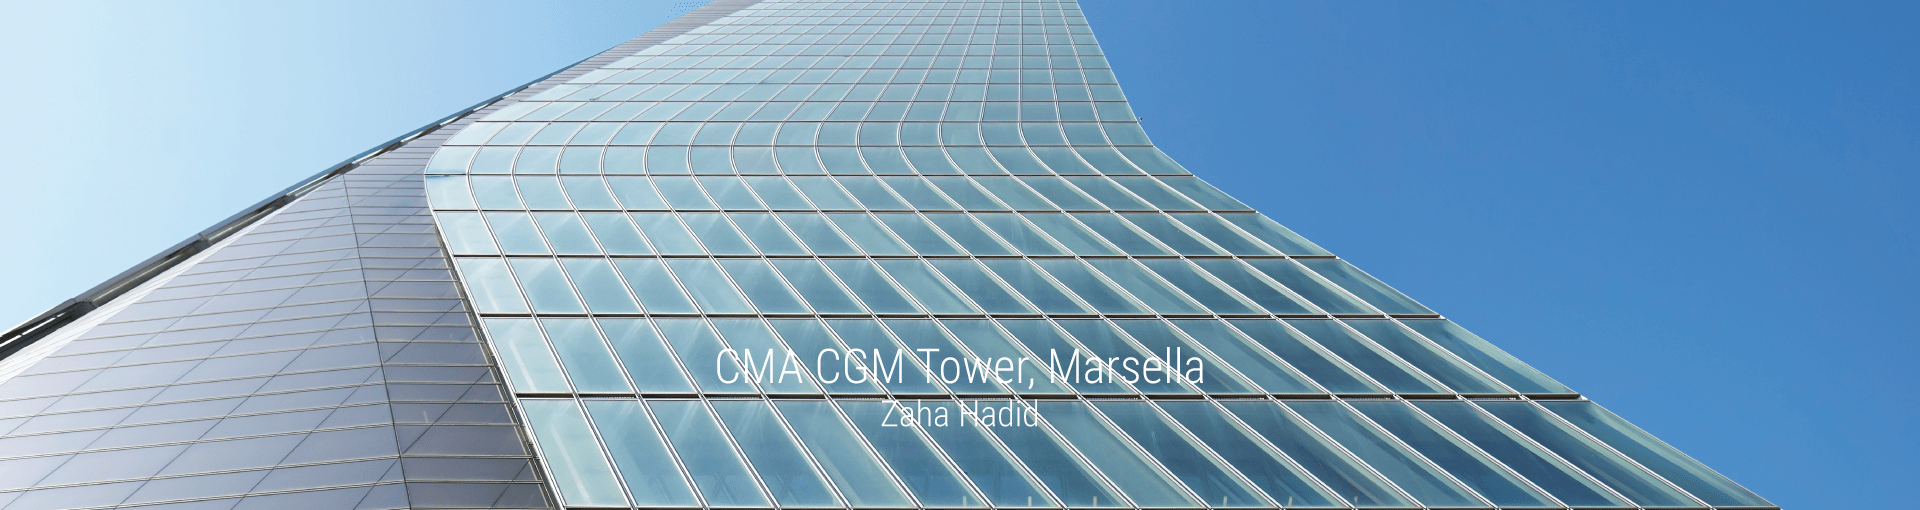 CMA CGM Tower - Marsella